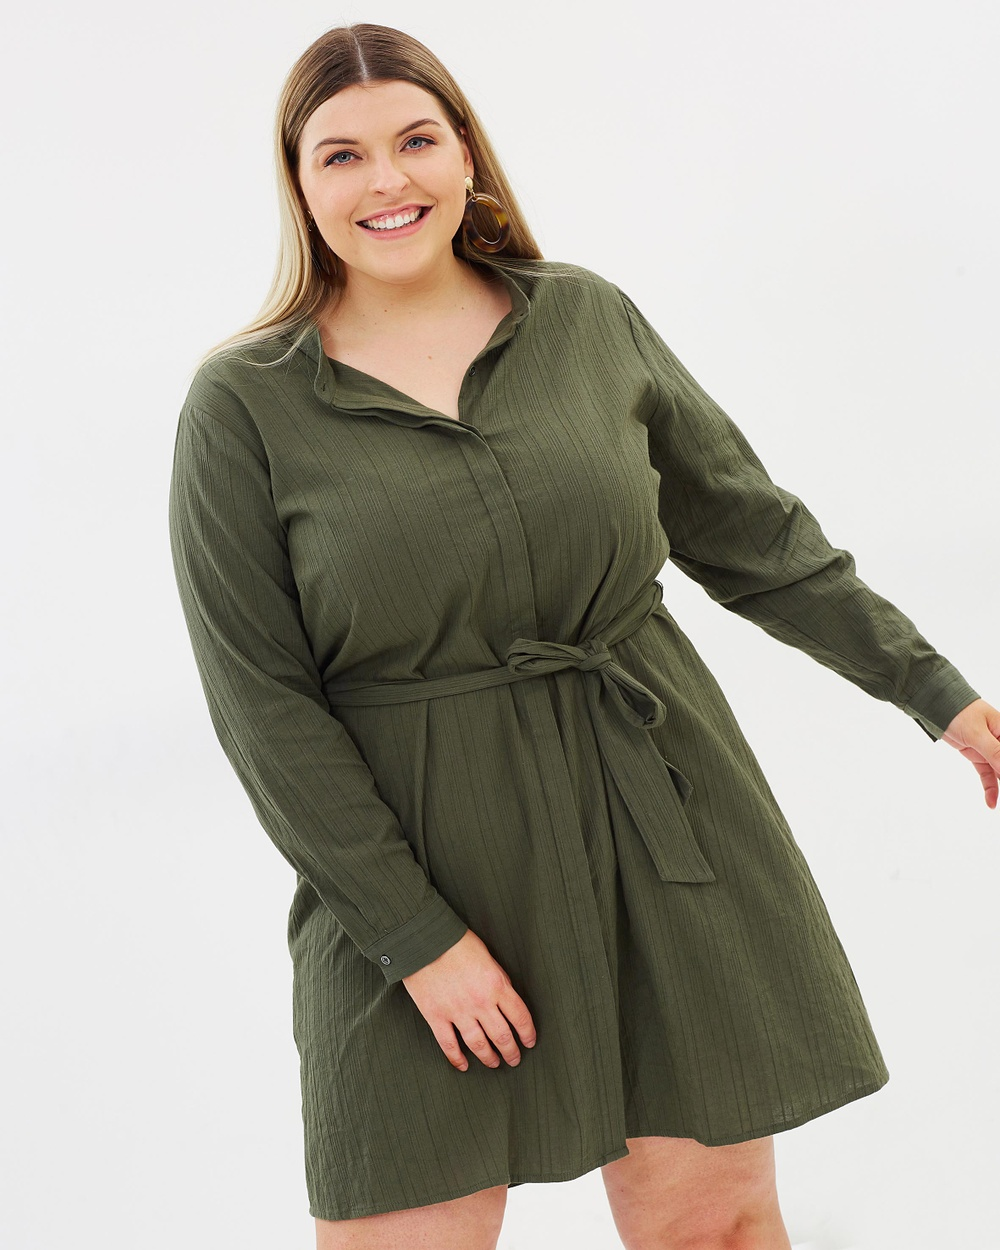 Atmos & Here Curvy ICONIC EXCLUSIVE Hazel Cotton Shirt Dress Dresses Khaki ICONIC EXCLUSIVE Hazel Cotton Shirt Dress